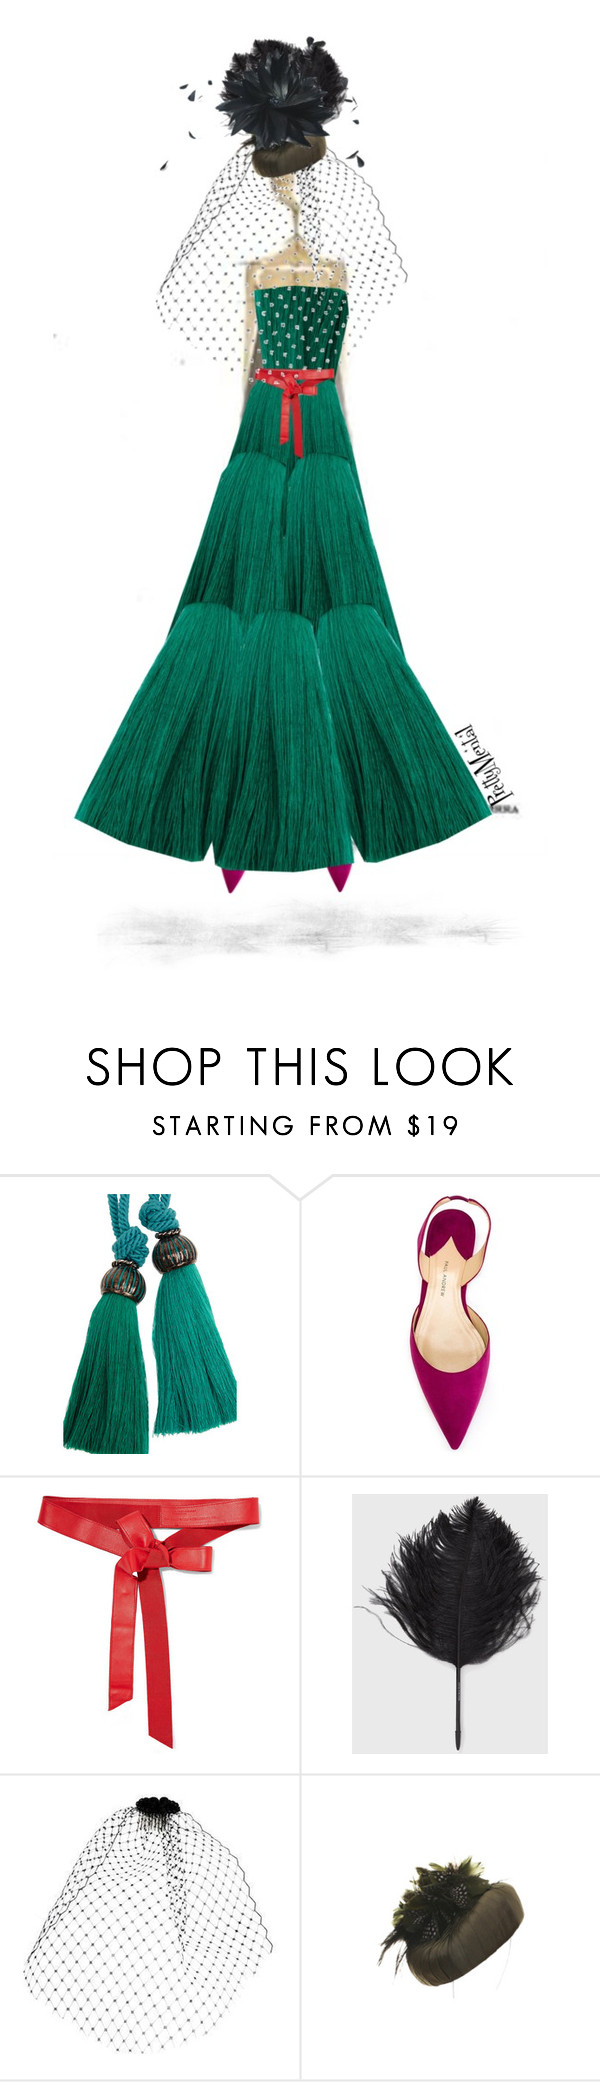 """""""Demure"""" by prettymental ❤ liked on Polyvore featuring Lanvin, Paul Andrew, Donna Karan, Jane Tran, polyvoreeditorial and prettymental"""